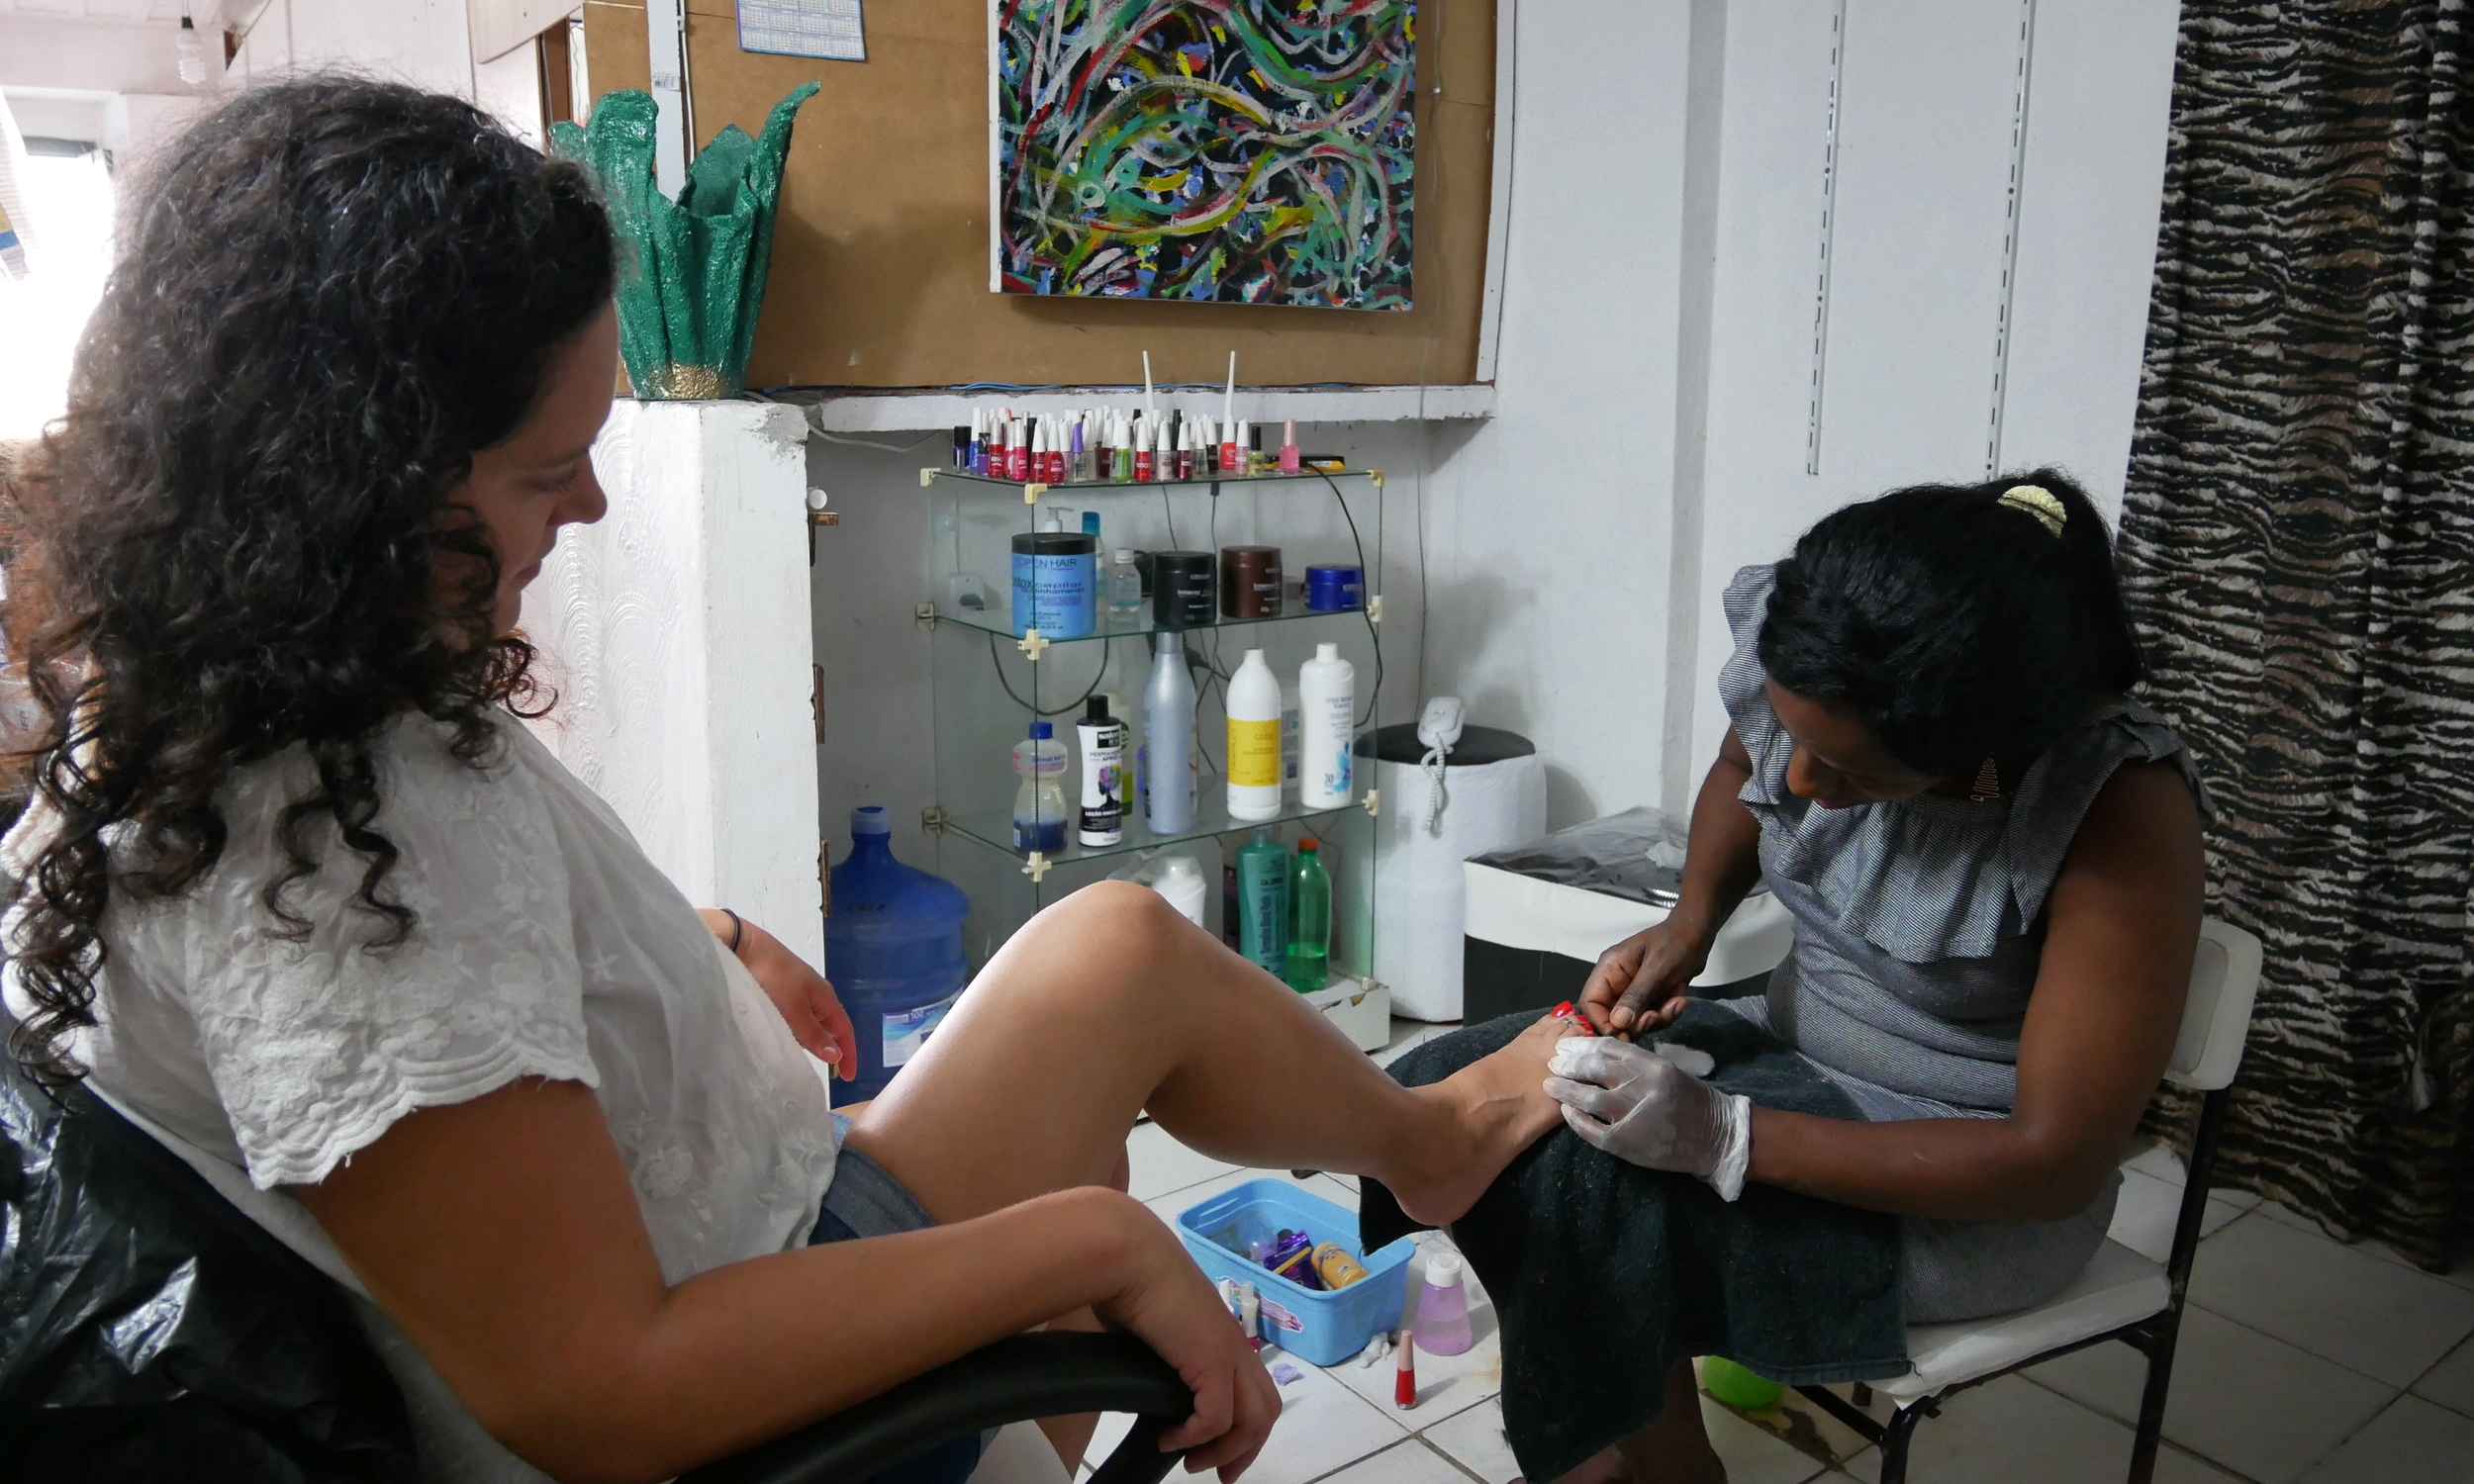 Getting my nails did in Salvador